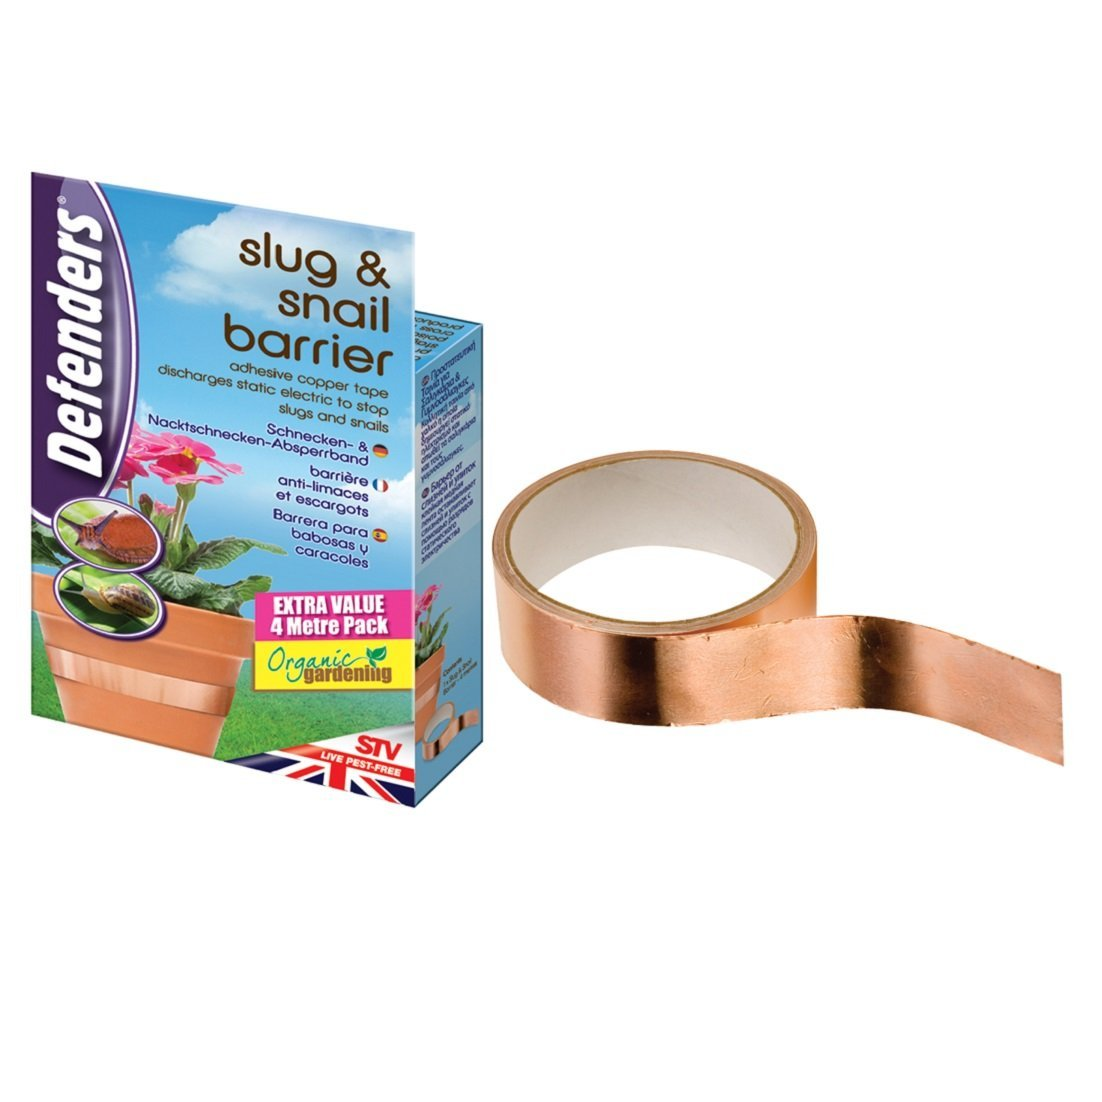 Defenders 650 ml Slug Gel (Humane Treatment for Snails and Slugs, Suitable for Organic Gardening, Effective in Wet and Dry Conditions) Ferraris Piston Service Ltd STV096